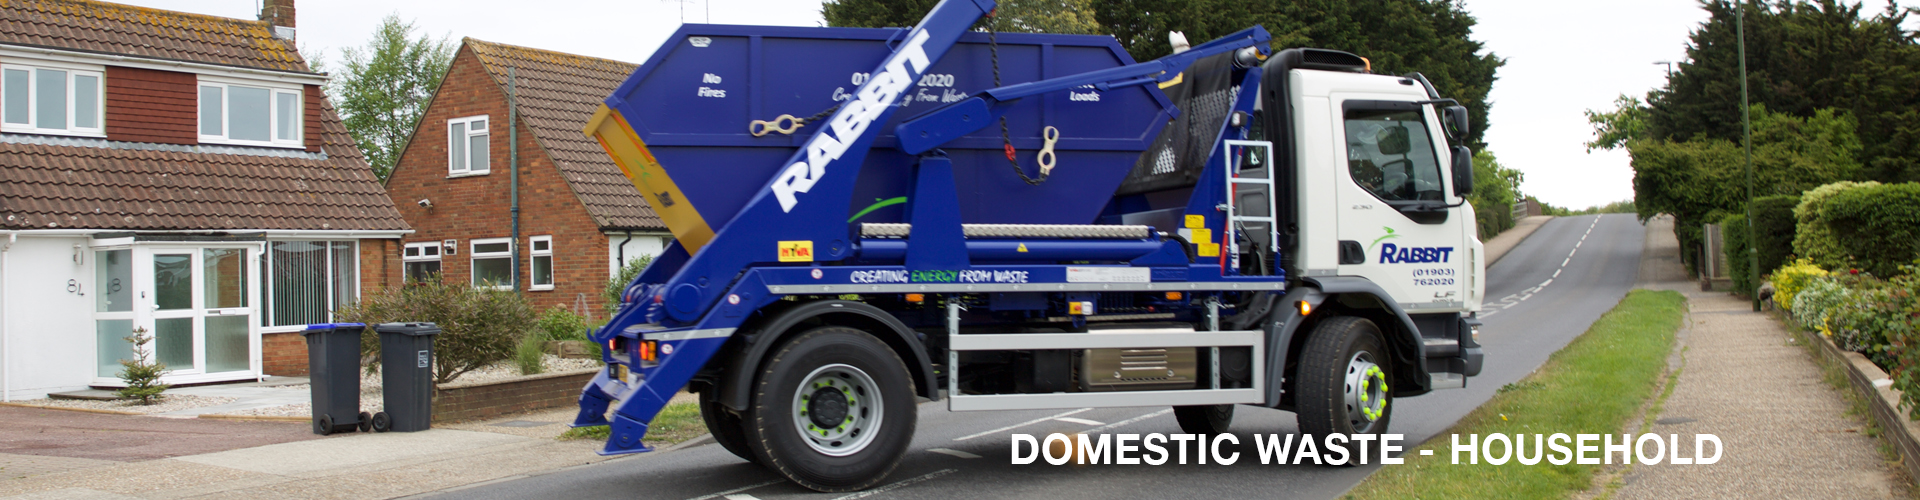 Domestic Waste image